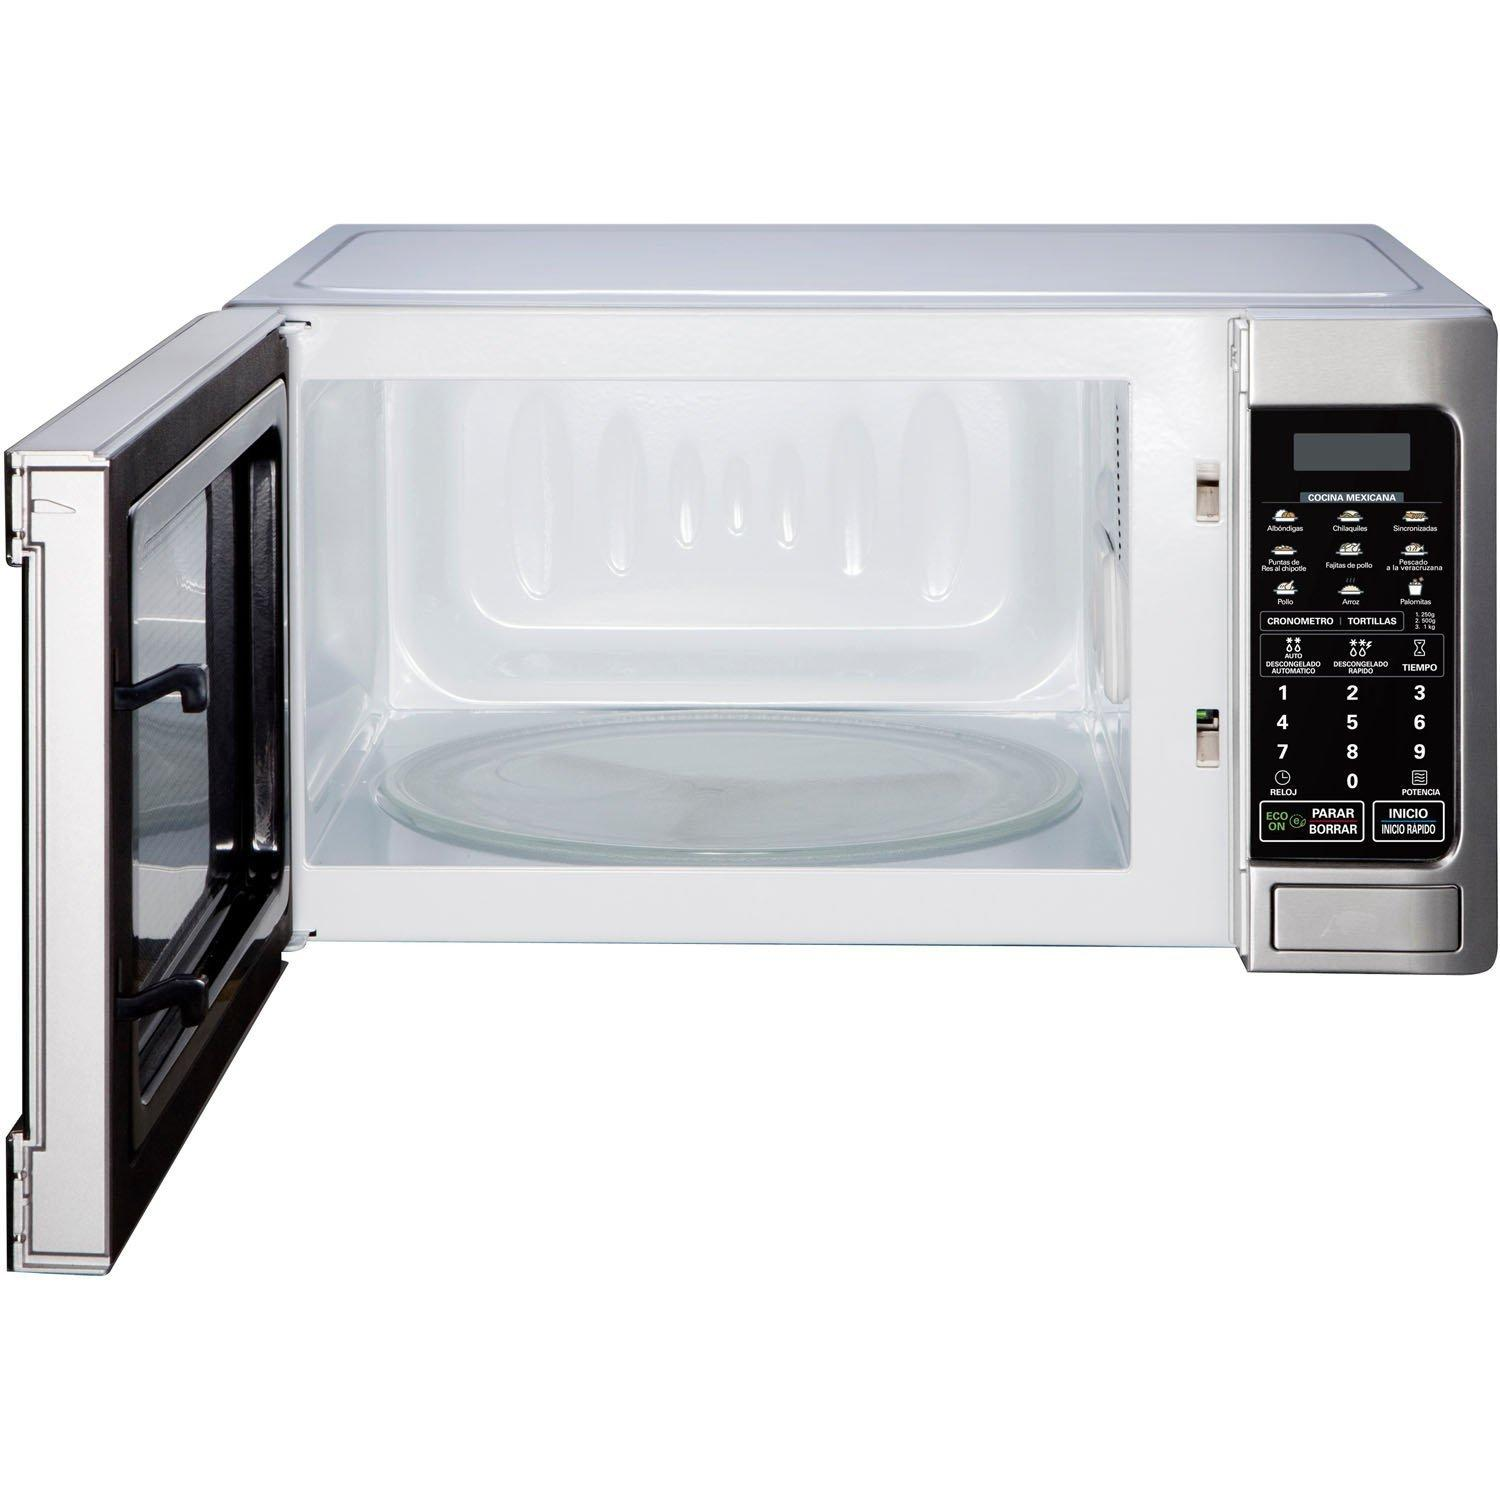 Lg Countertop Oven : LCS1112ST Lg lcs1112st Countertop Microwaves Stainless Steel